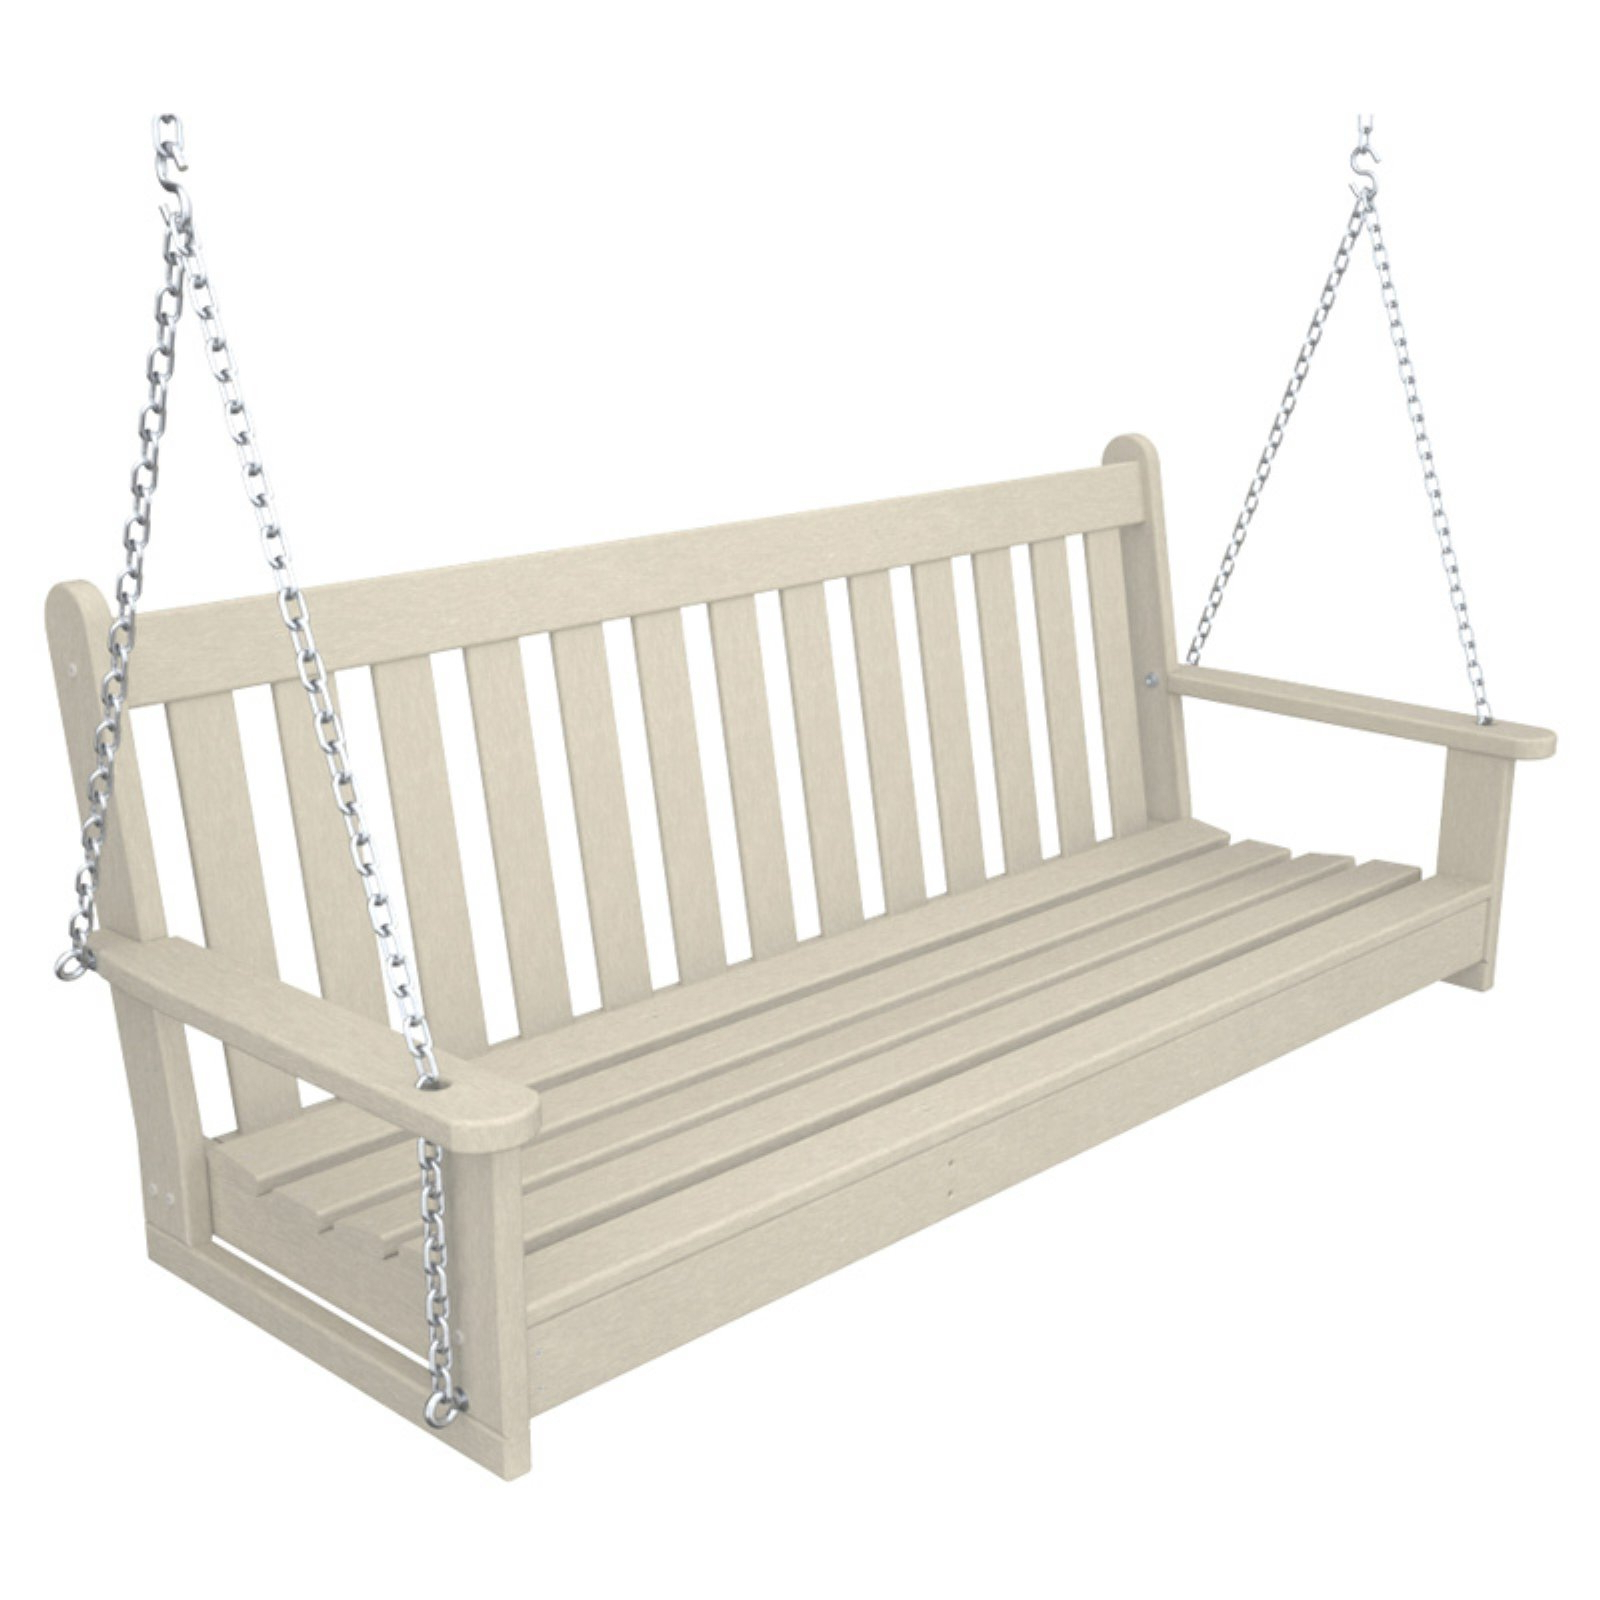 Vineyard Porch Swings With Regard To Widely Used Polywoodâ® Vineyard Recycled Plastic 5 Ft. Porch Swing Sand (Gallery 5 of 25)